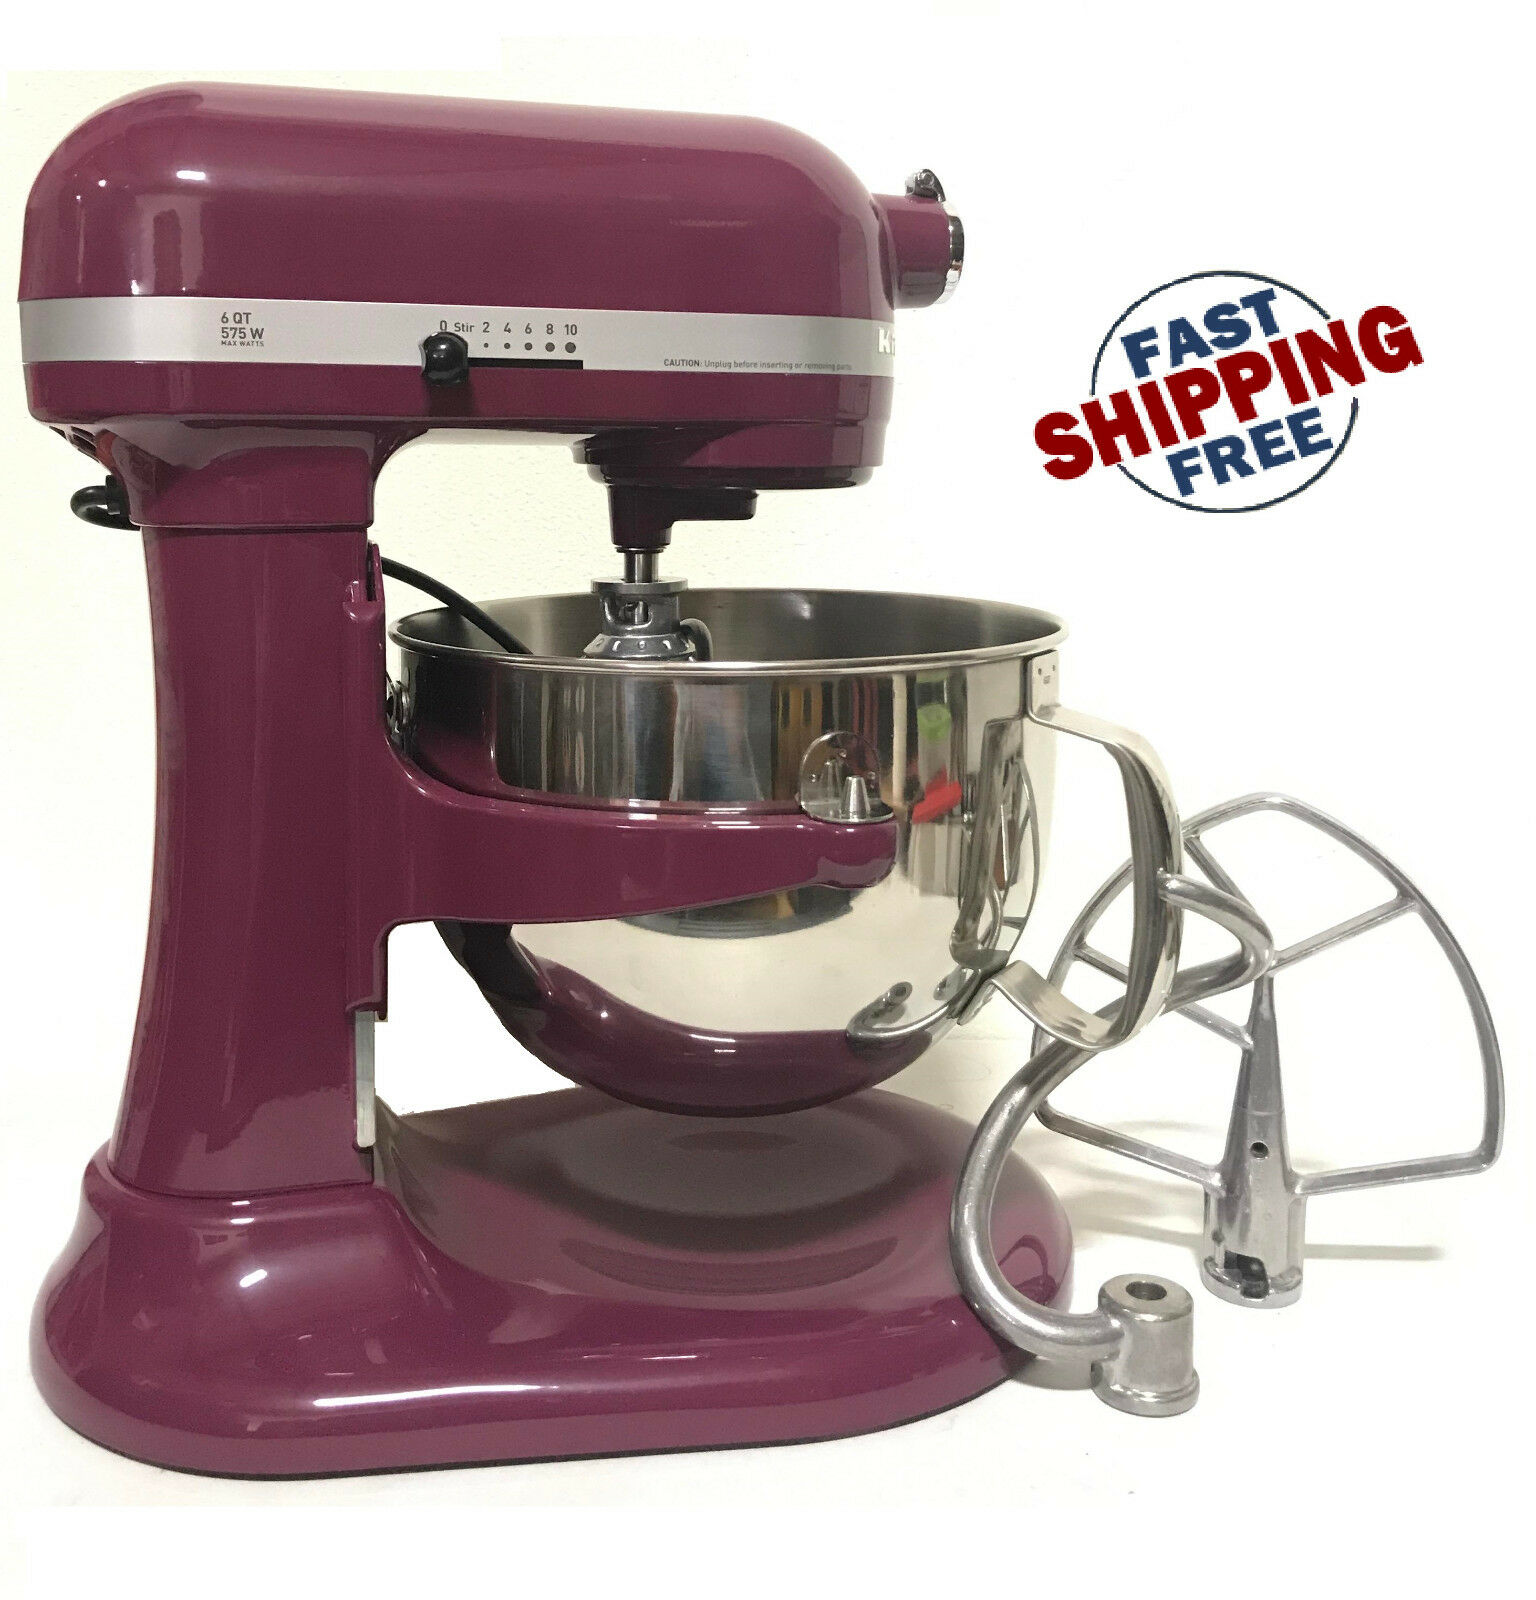 Kitchenaid Rkp26m1x 6 Qt Pro 600 Large Capacity Stand Mixer